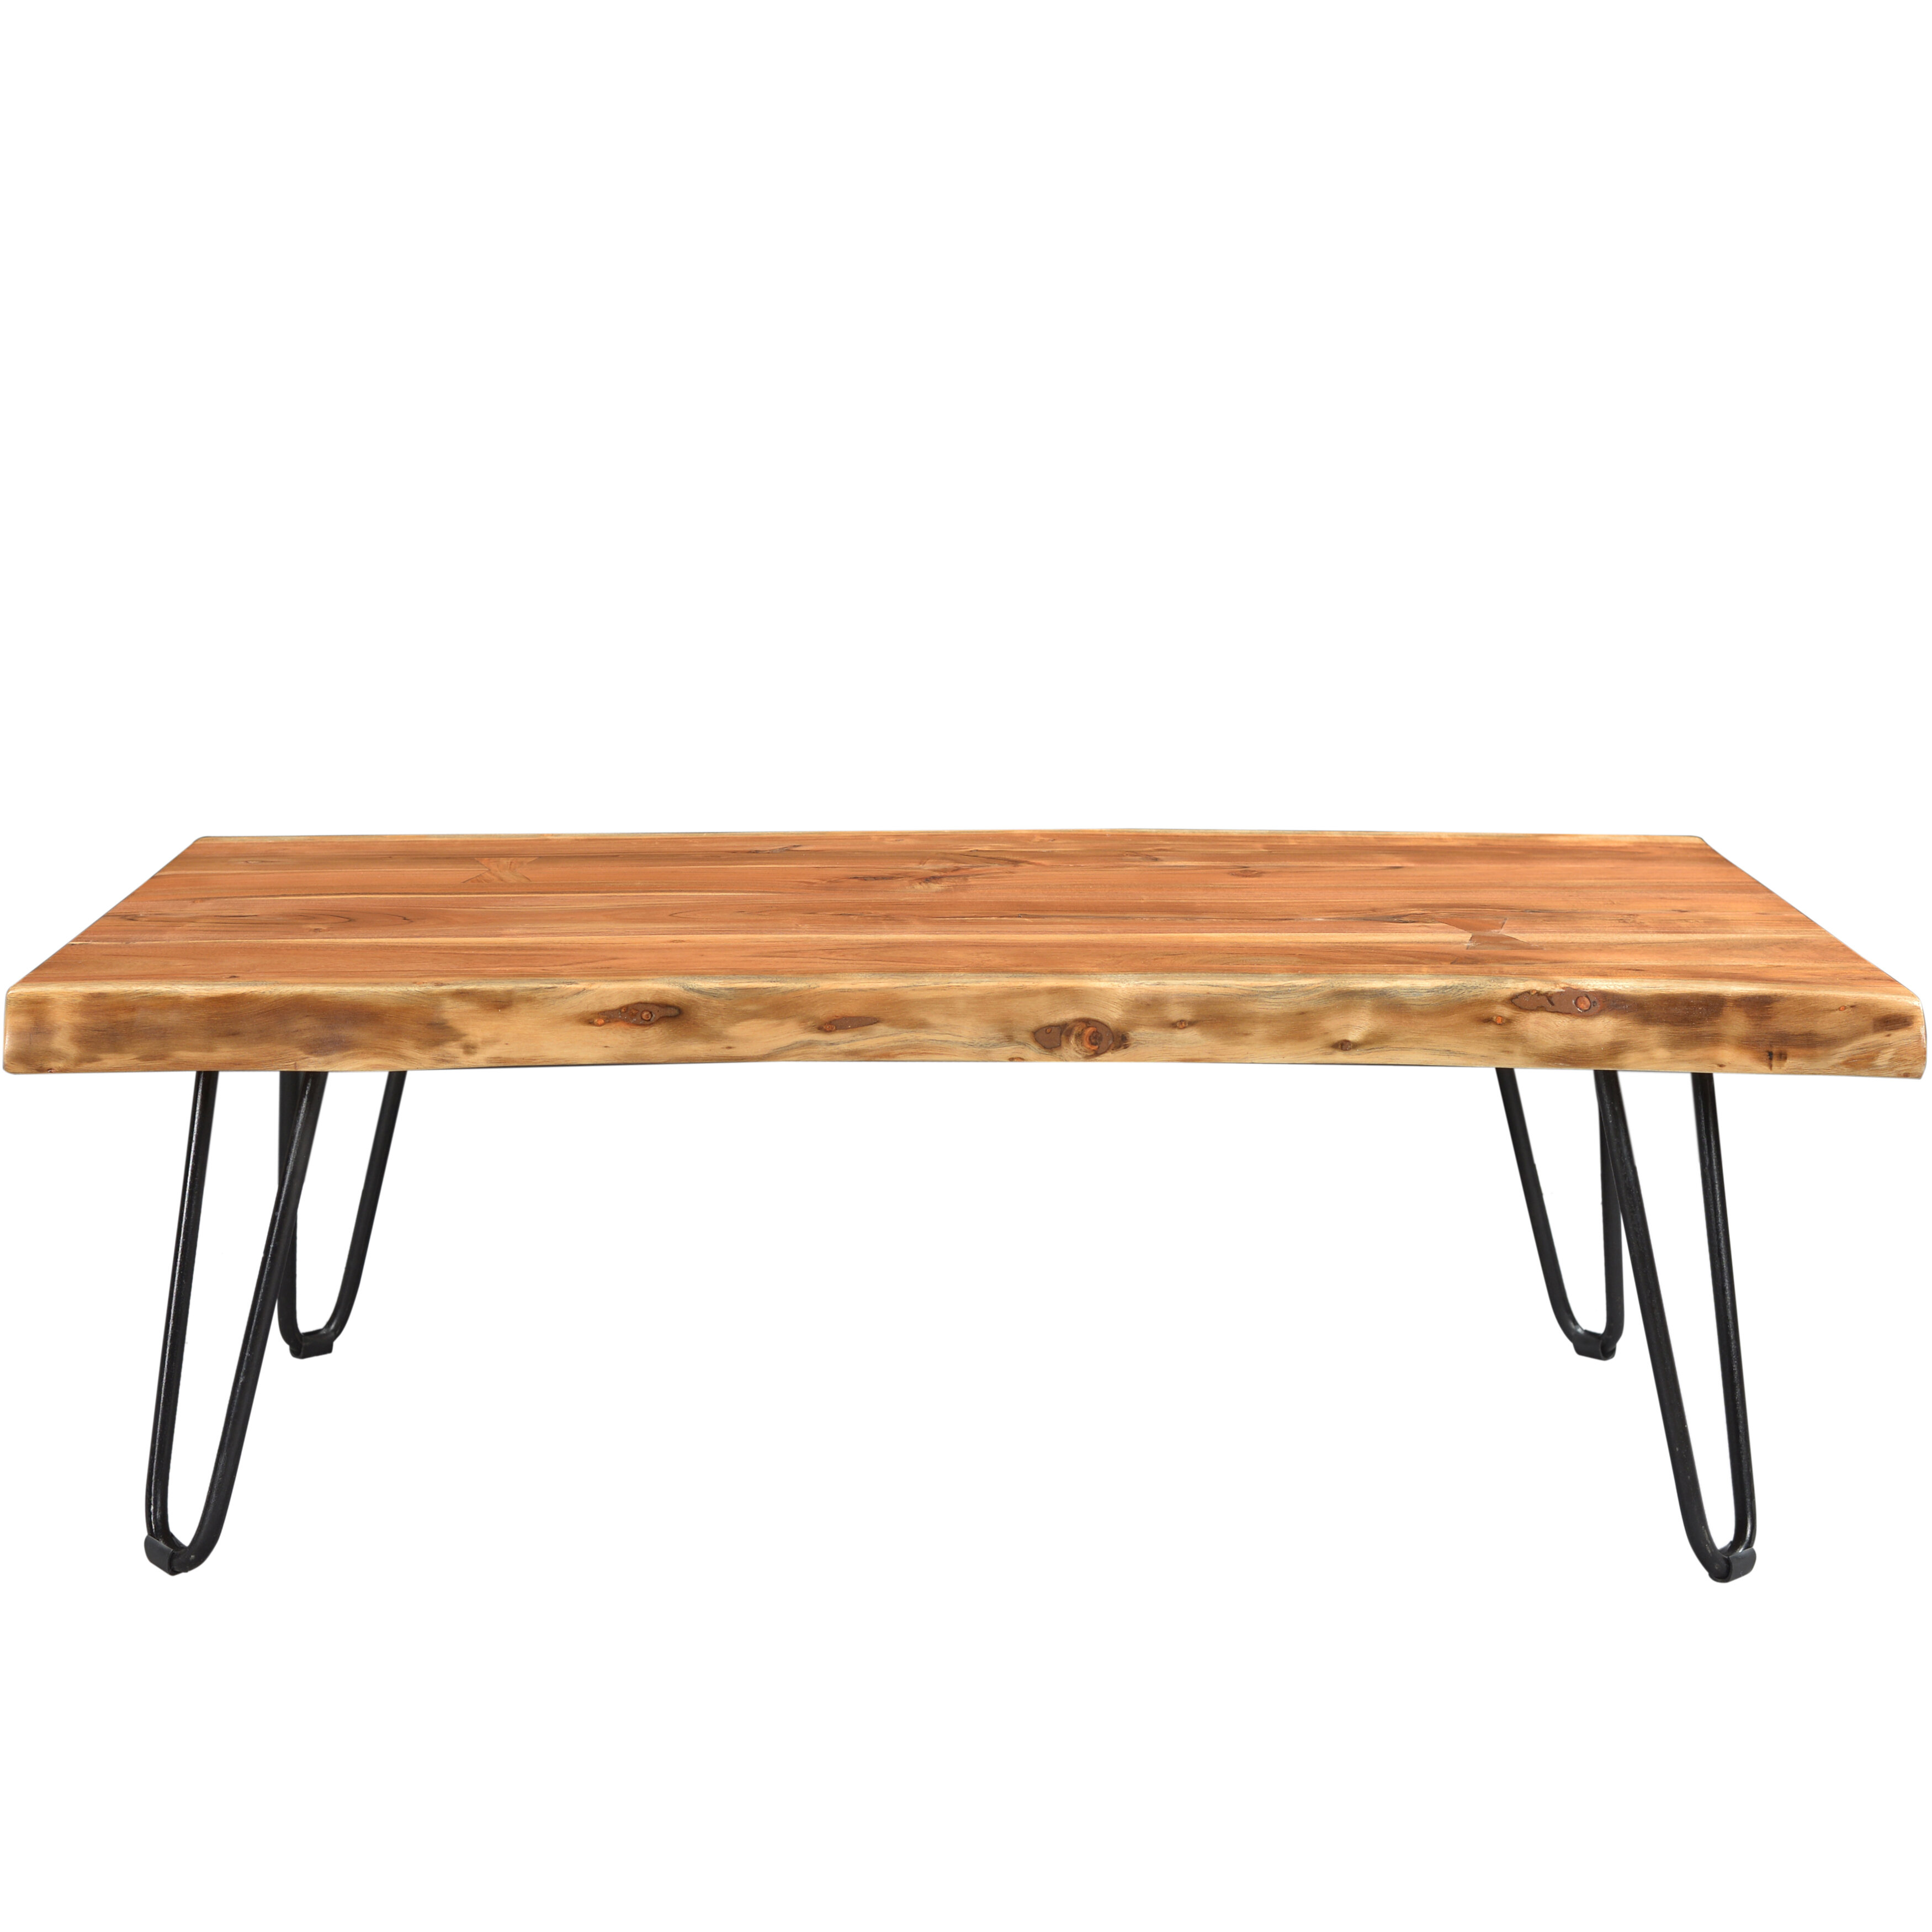 Union rustic kourtney coffee table reviews wayfair